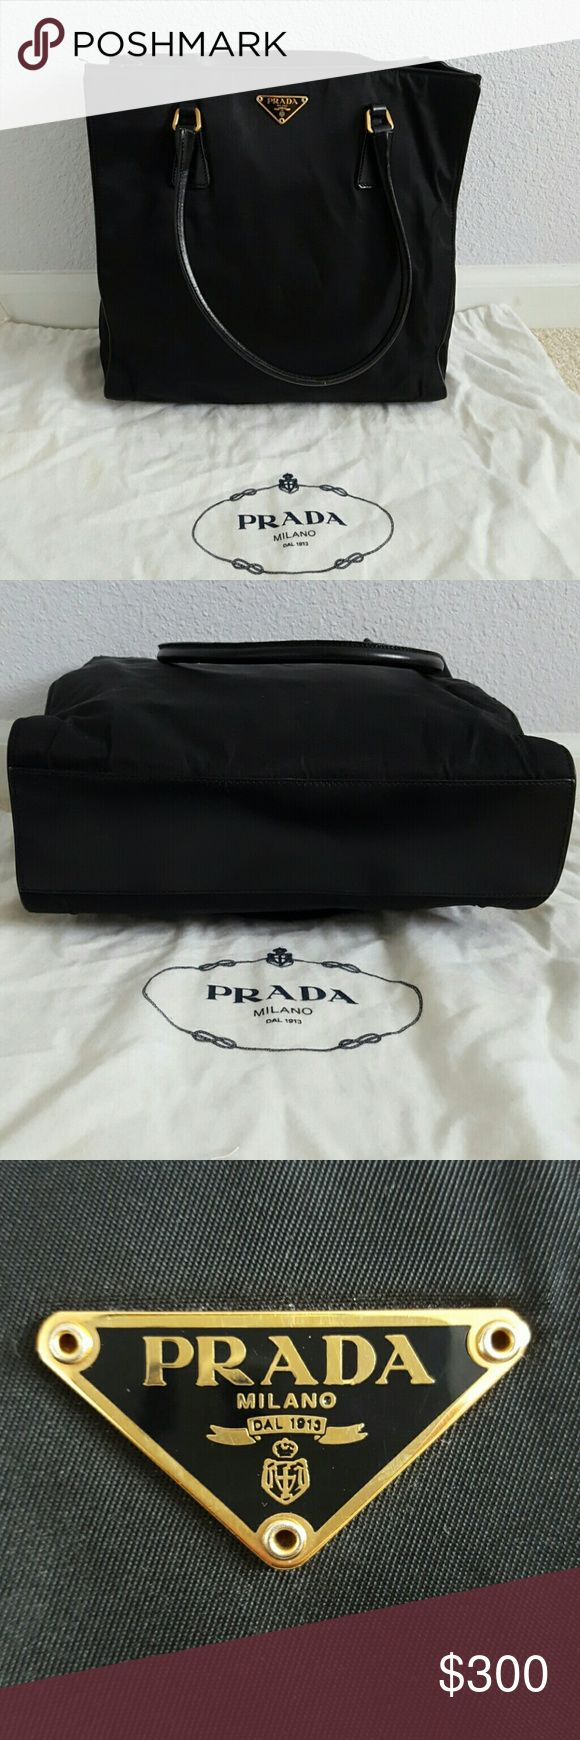 Prada Nylon Tote Bag 100% Authentic and in good condition. Also comes with a duster bag. Prada Bags Totes